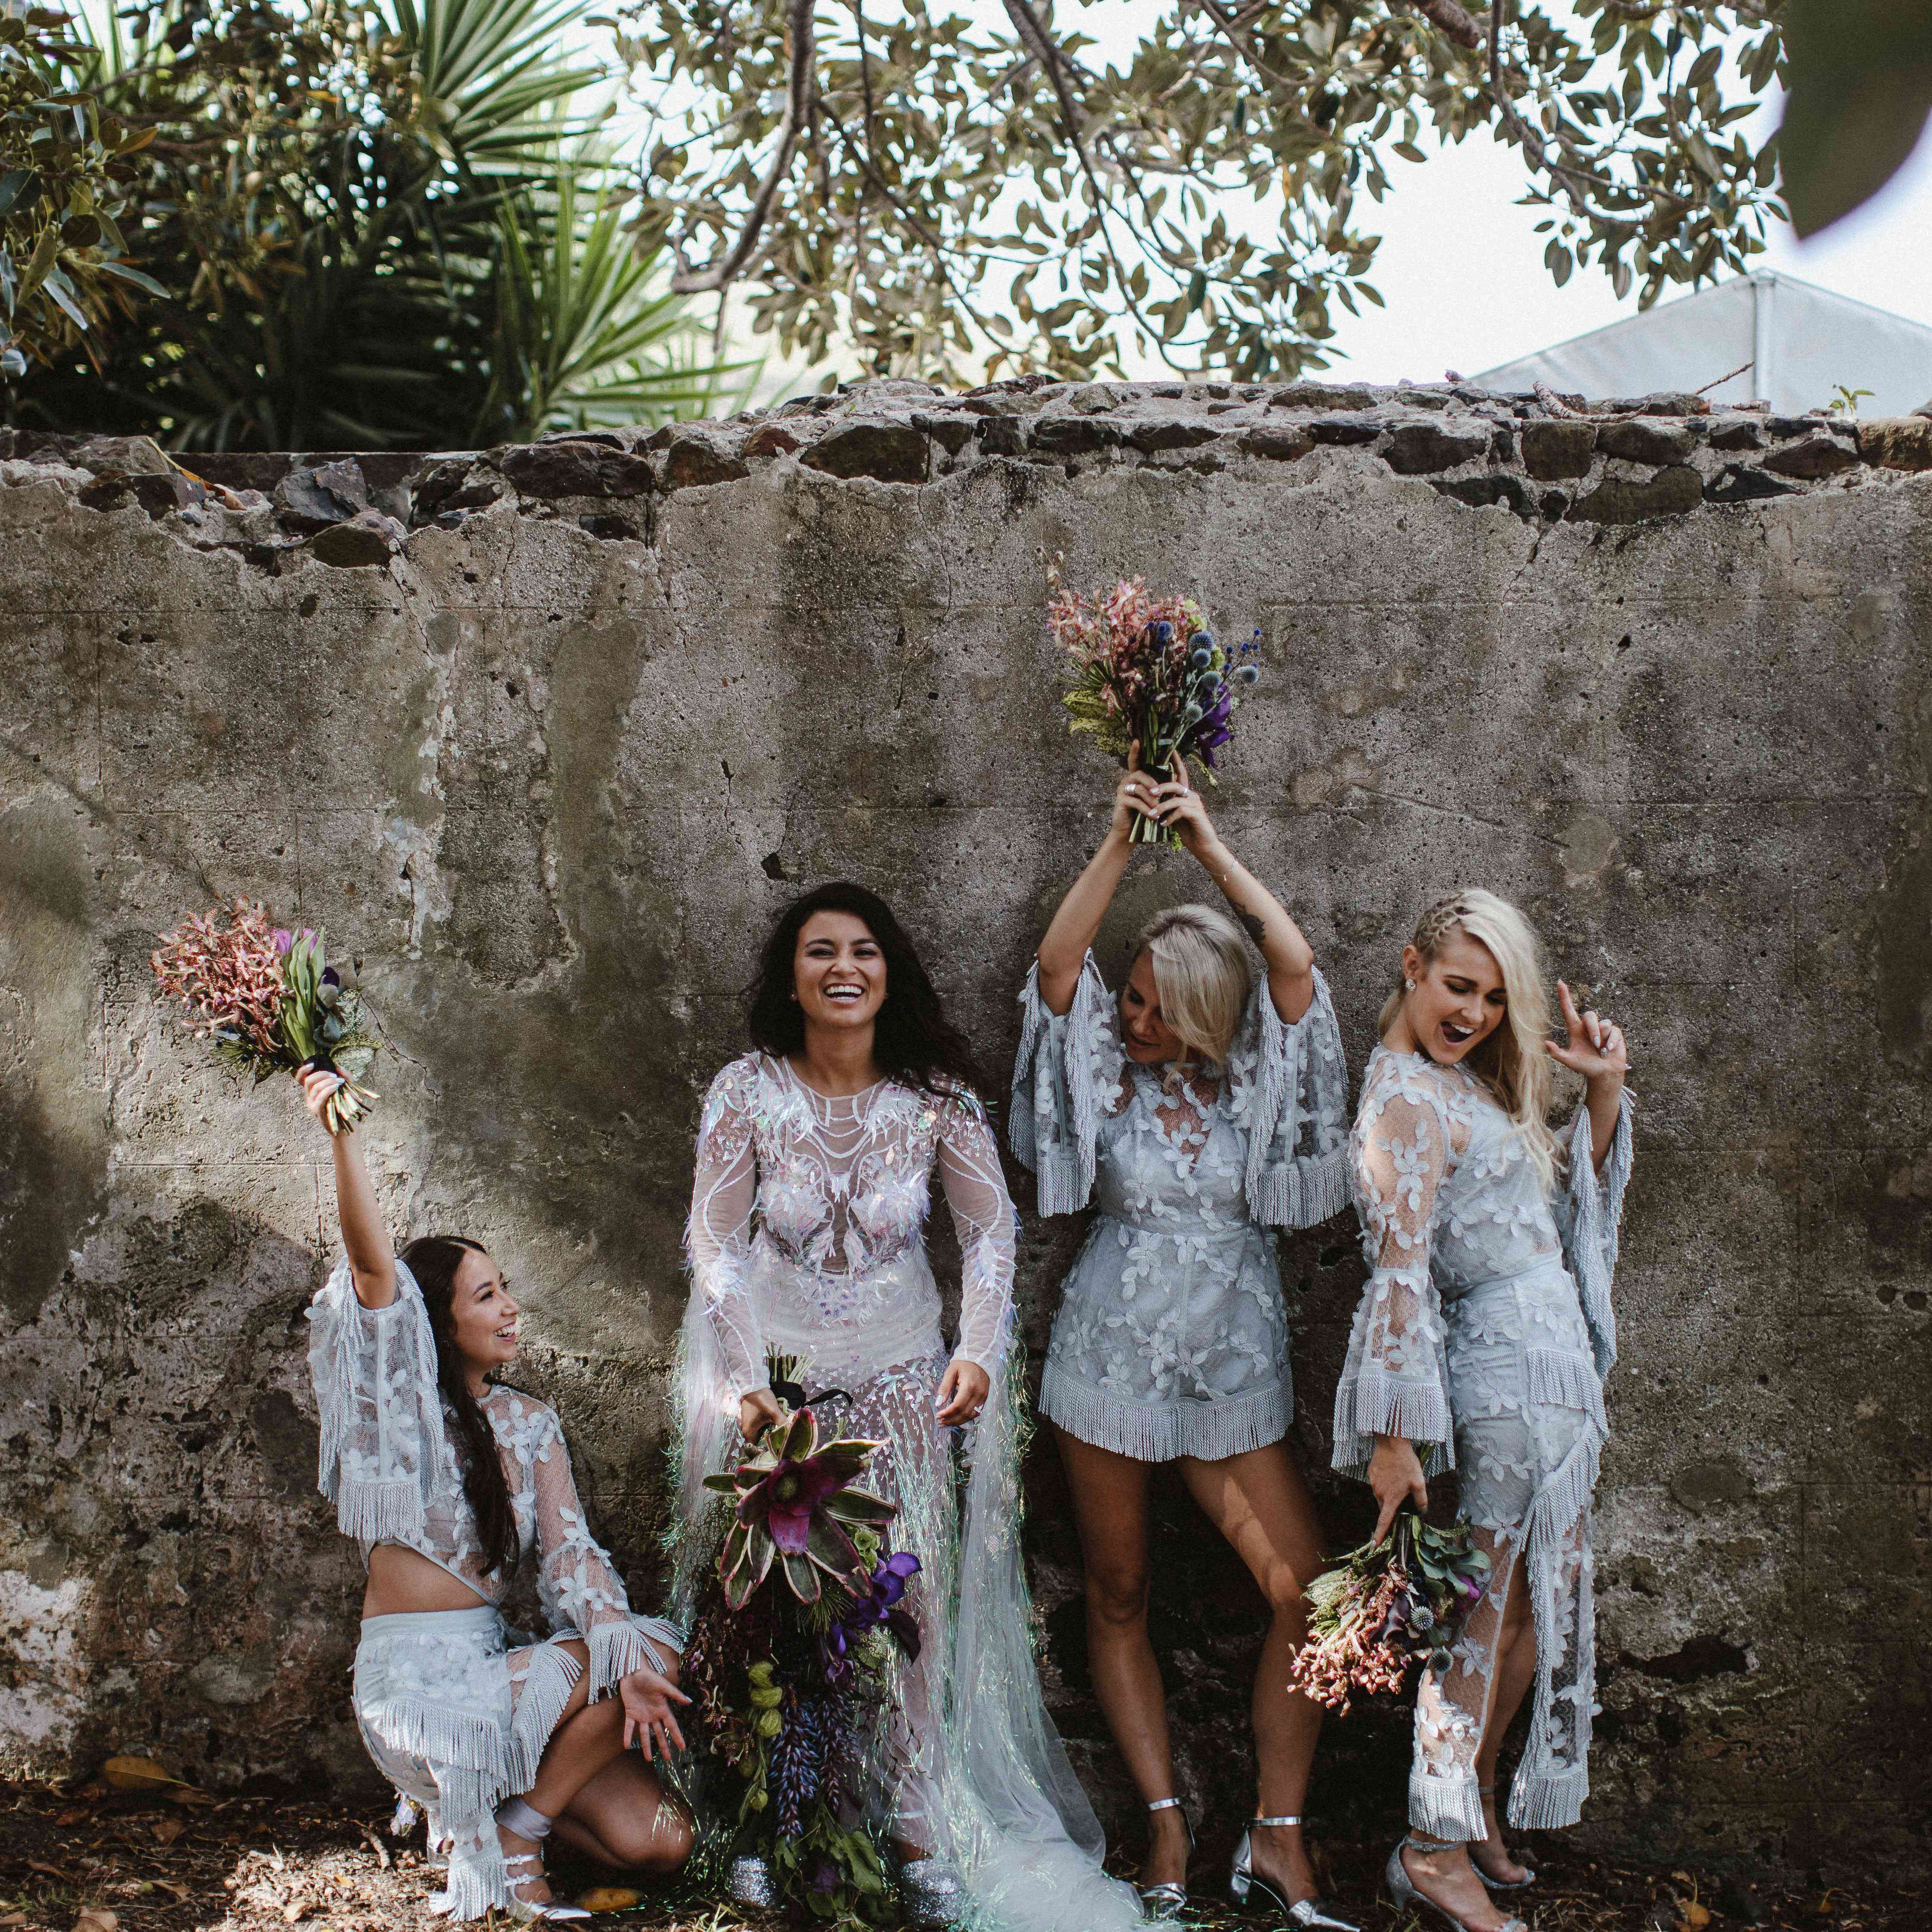 The bridesmaids are wearing silhouettes covered in fringe and appliques.